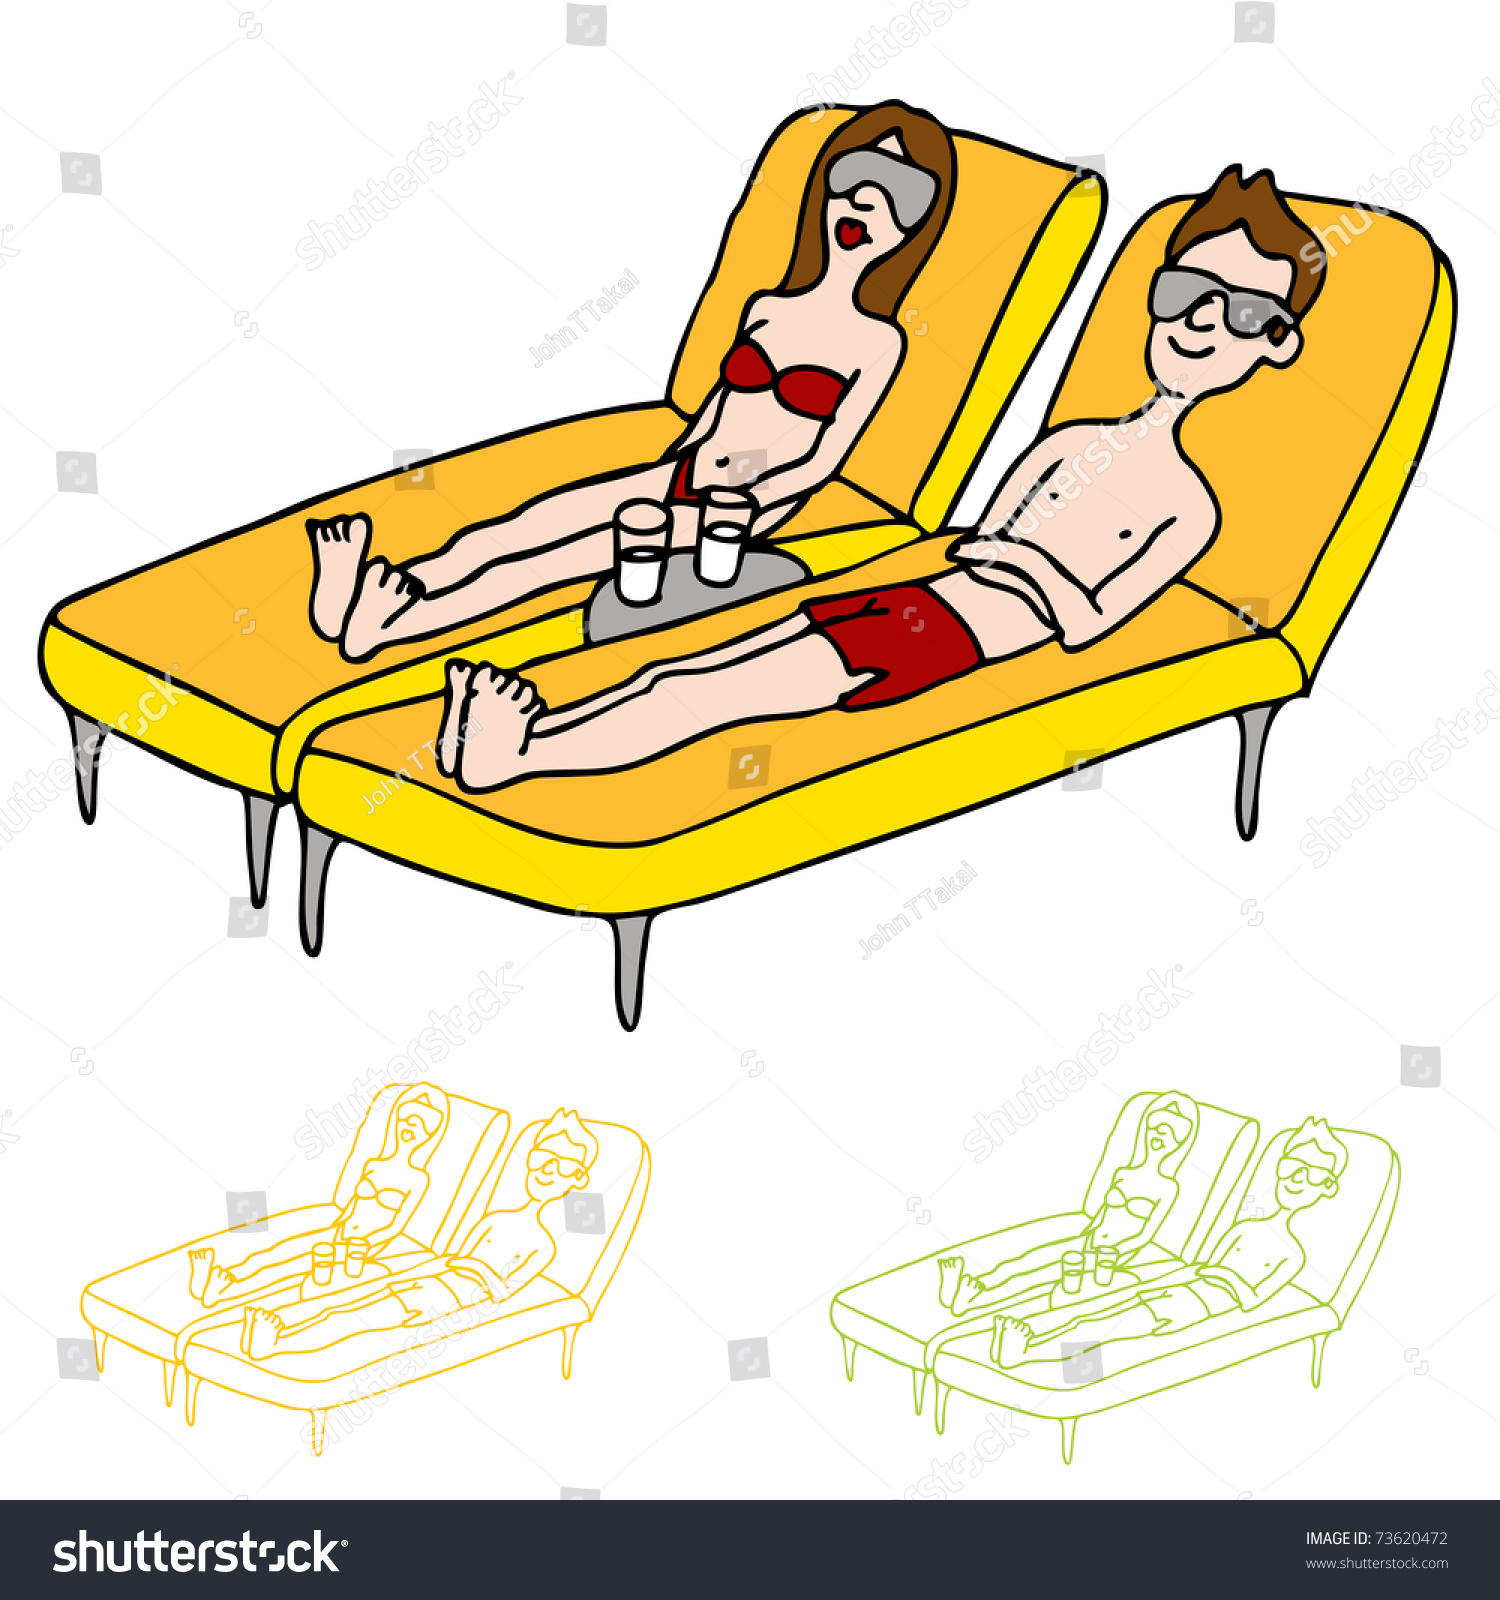 Image Man Woman Lounge Chairs Stock Vector Shutterstock